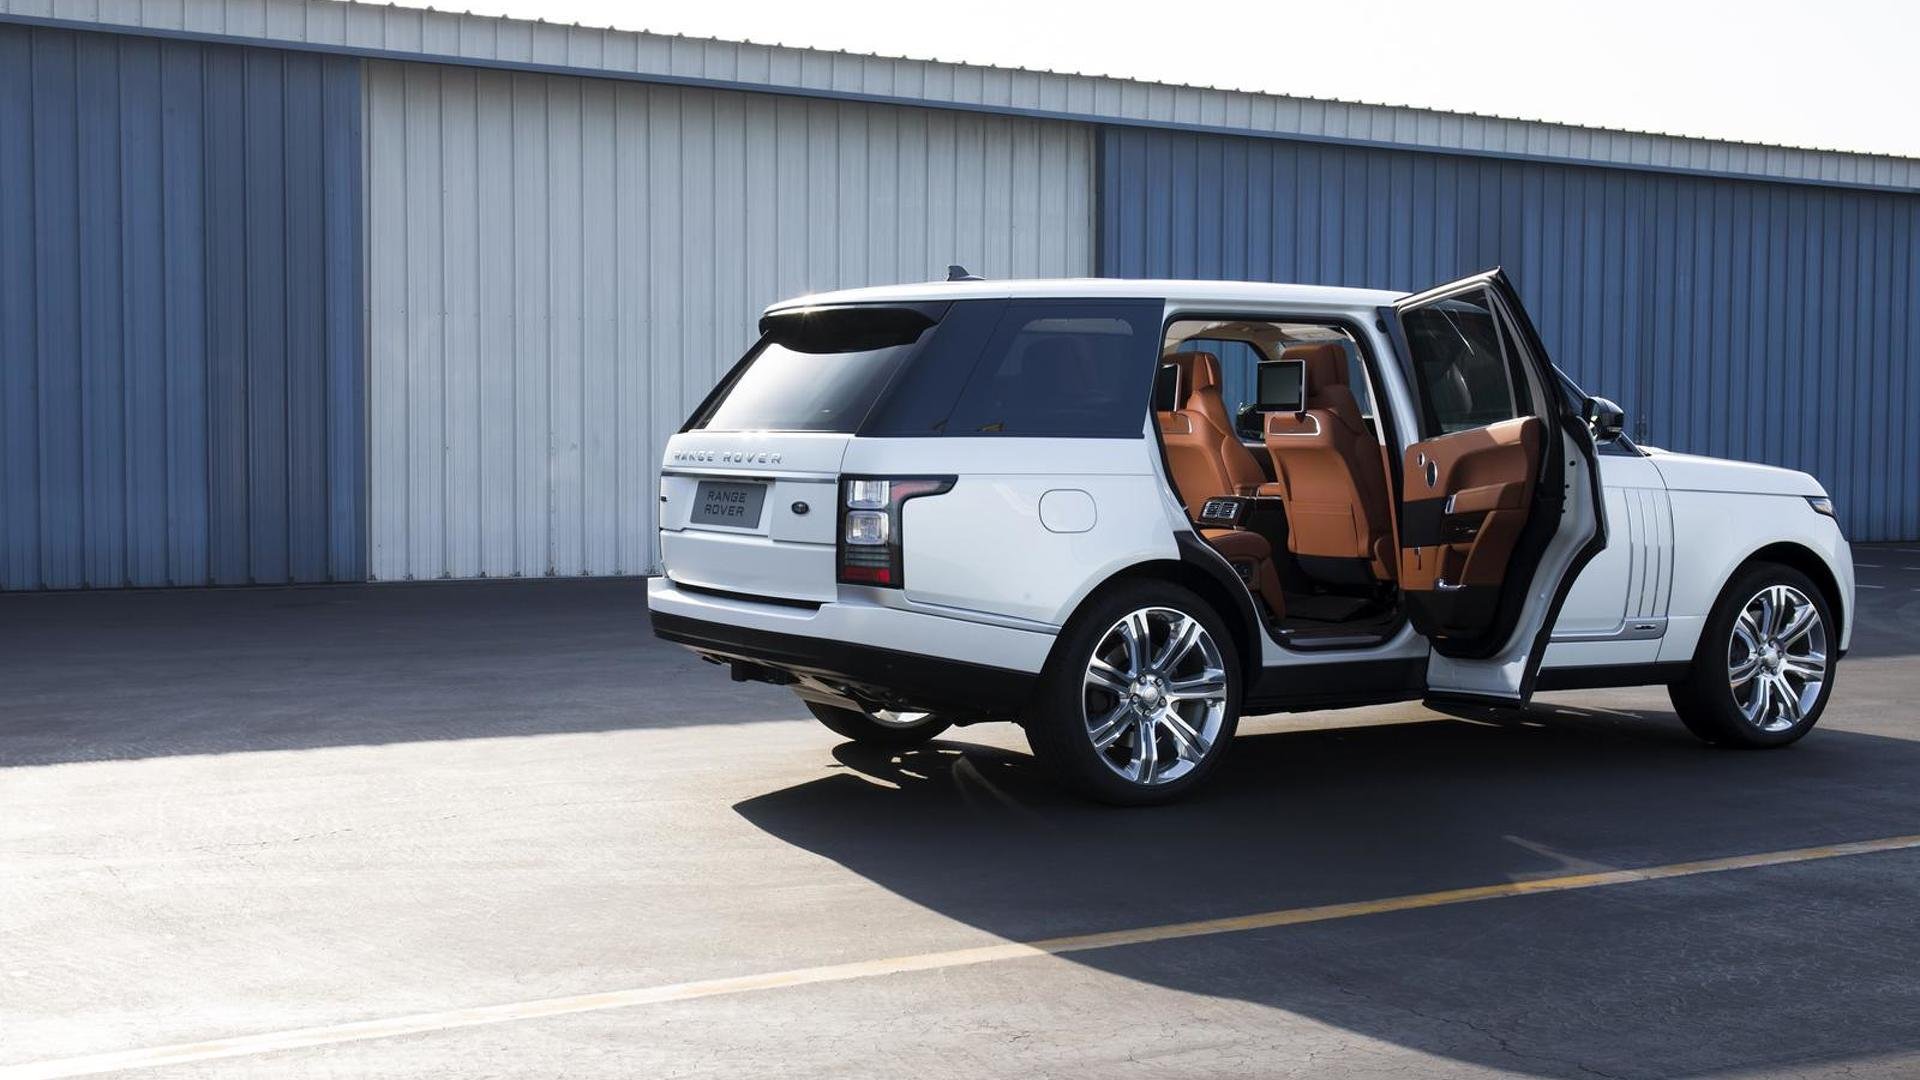 Land Rover working on an ultra luxurious £200 000 Range Rover for 2016